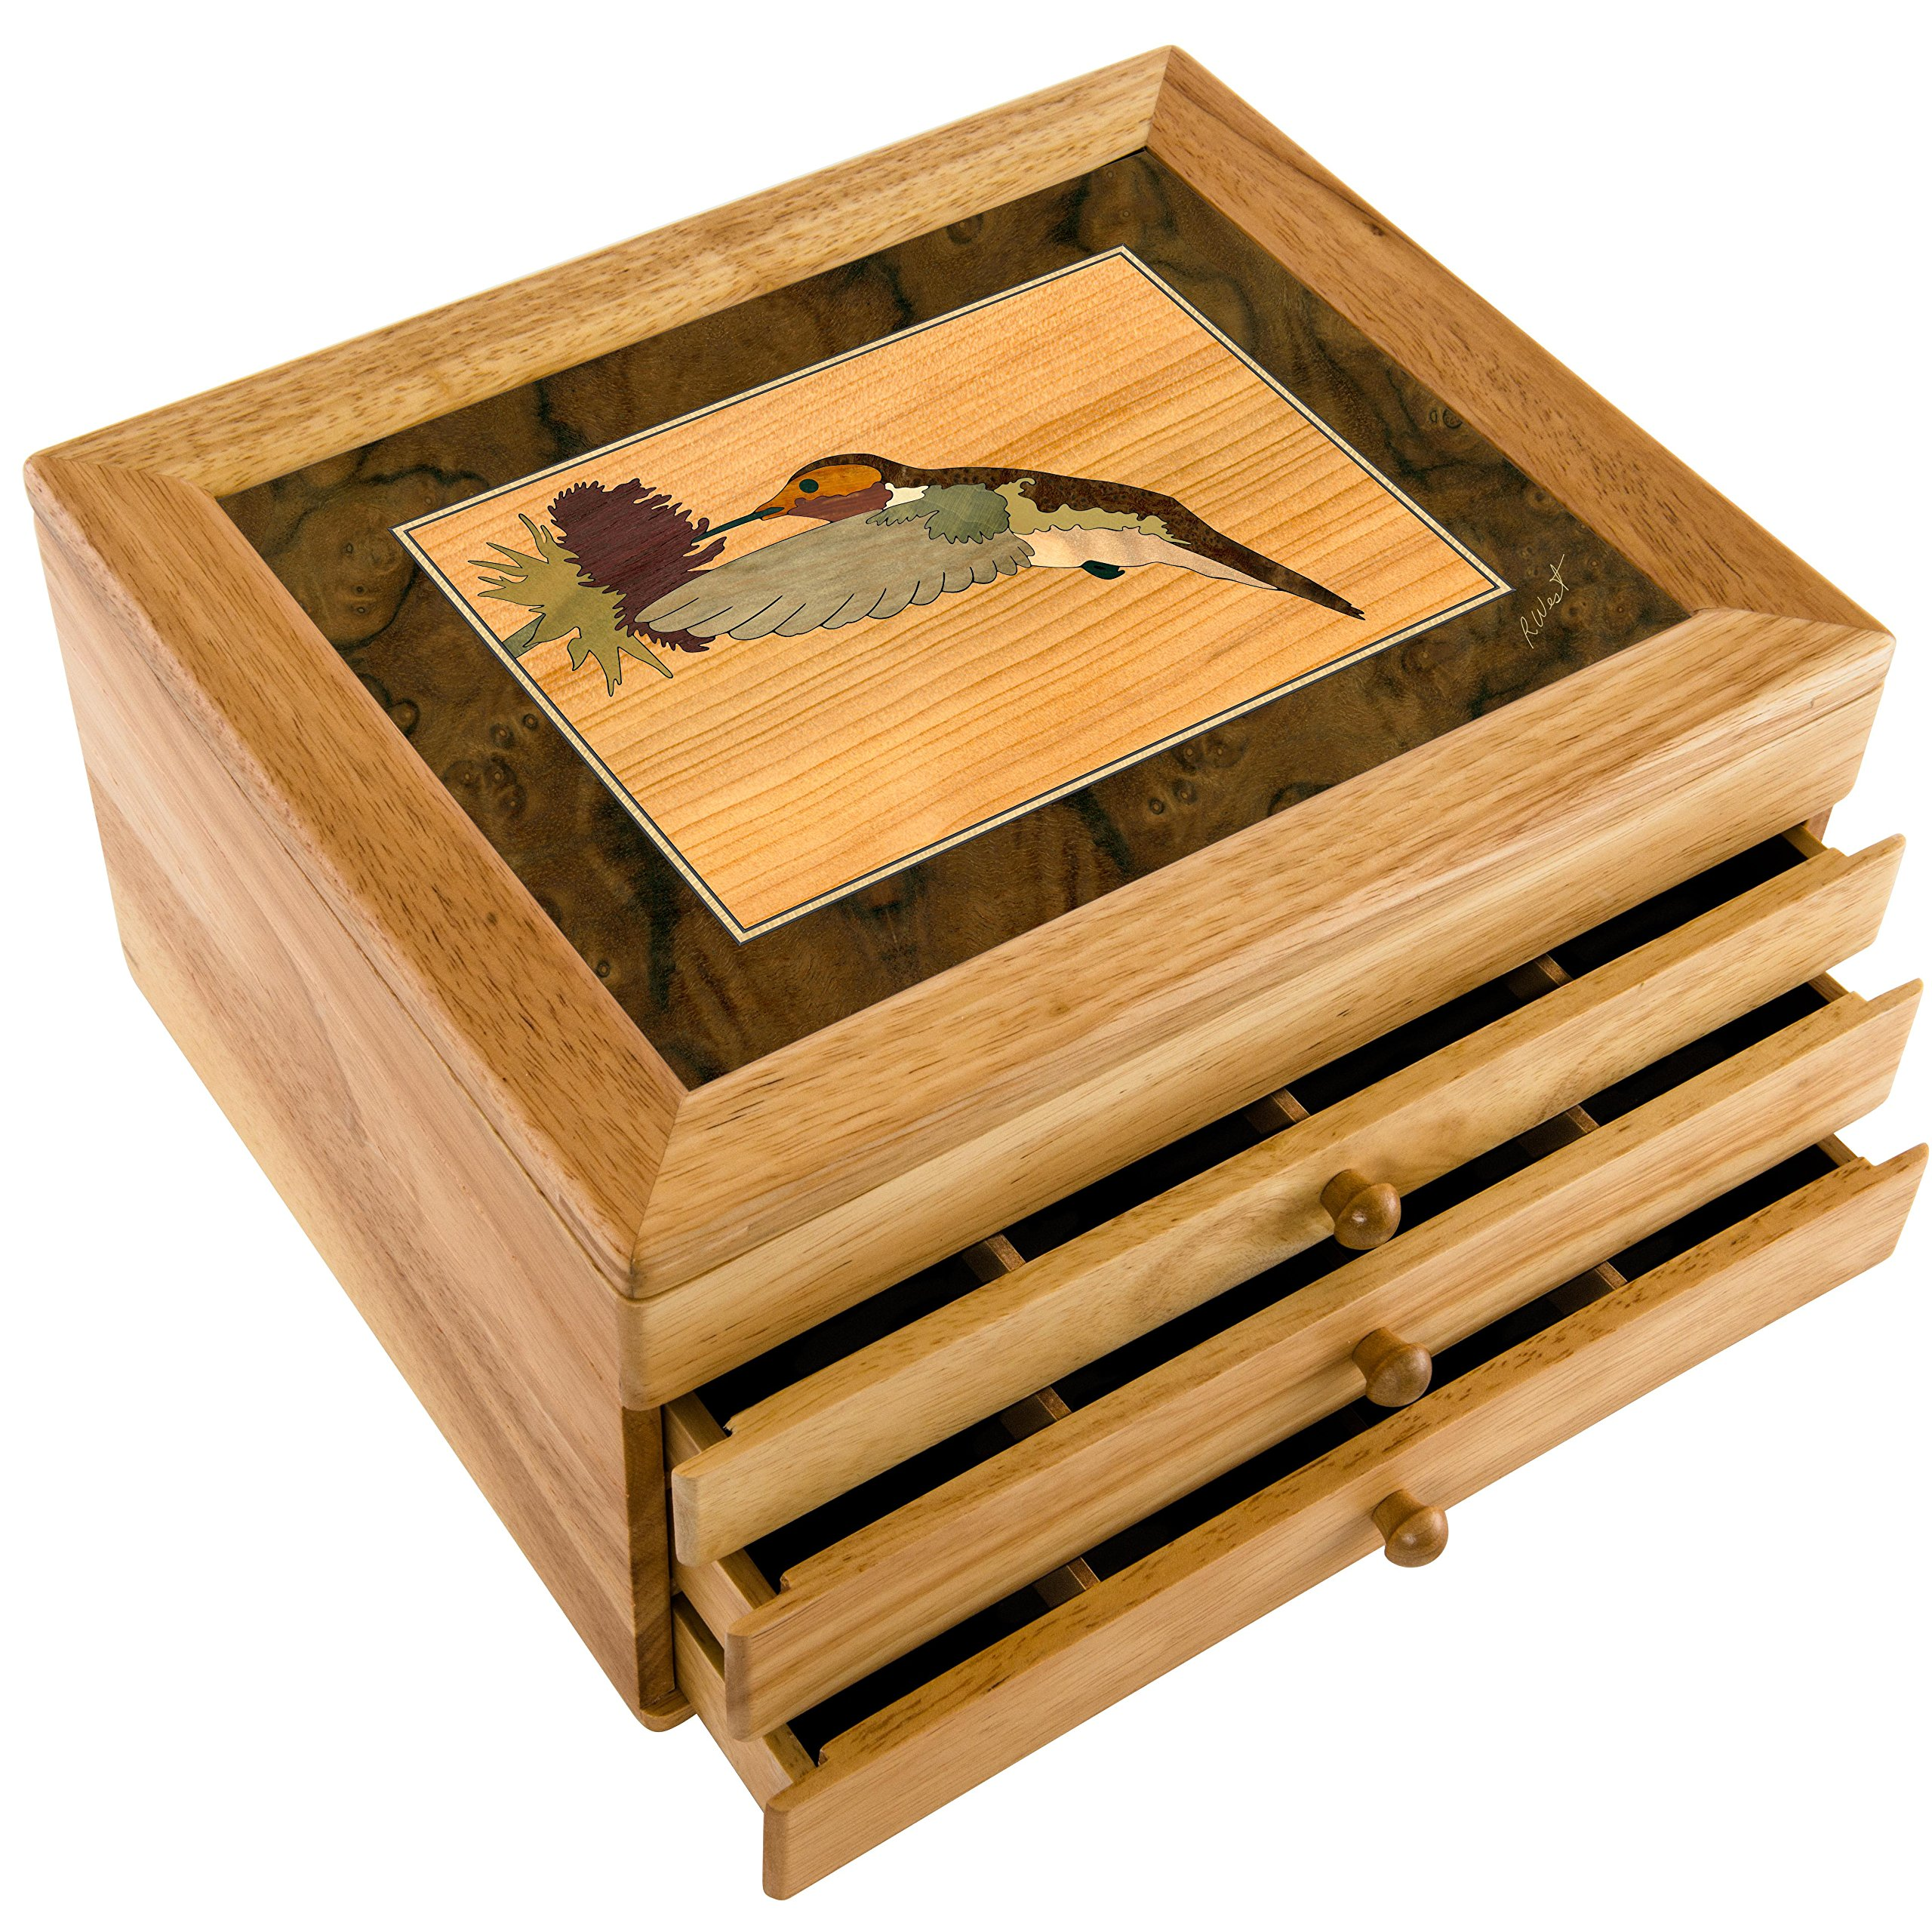 MarqART Hummingbird Wood Art Jewelry Box & Gift - Handmade USA - Unmatched Quality - Unique, No Two are The Same - Original Work of Wood Art (#7017 Hummingbird 3 Drawer)